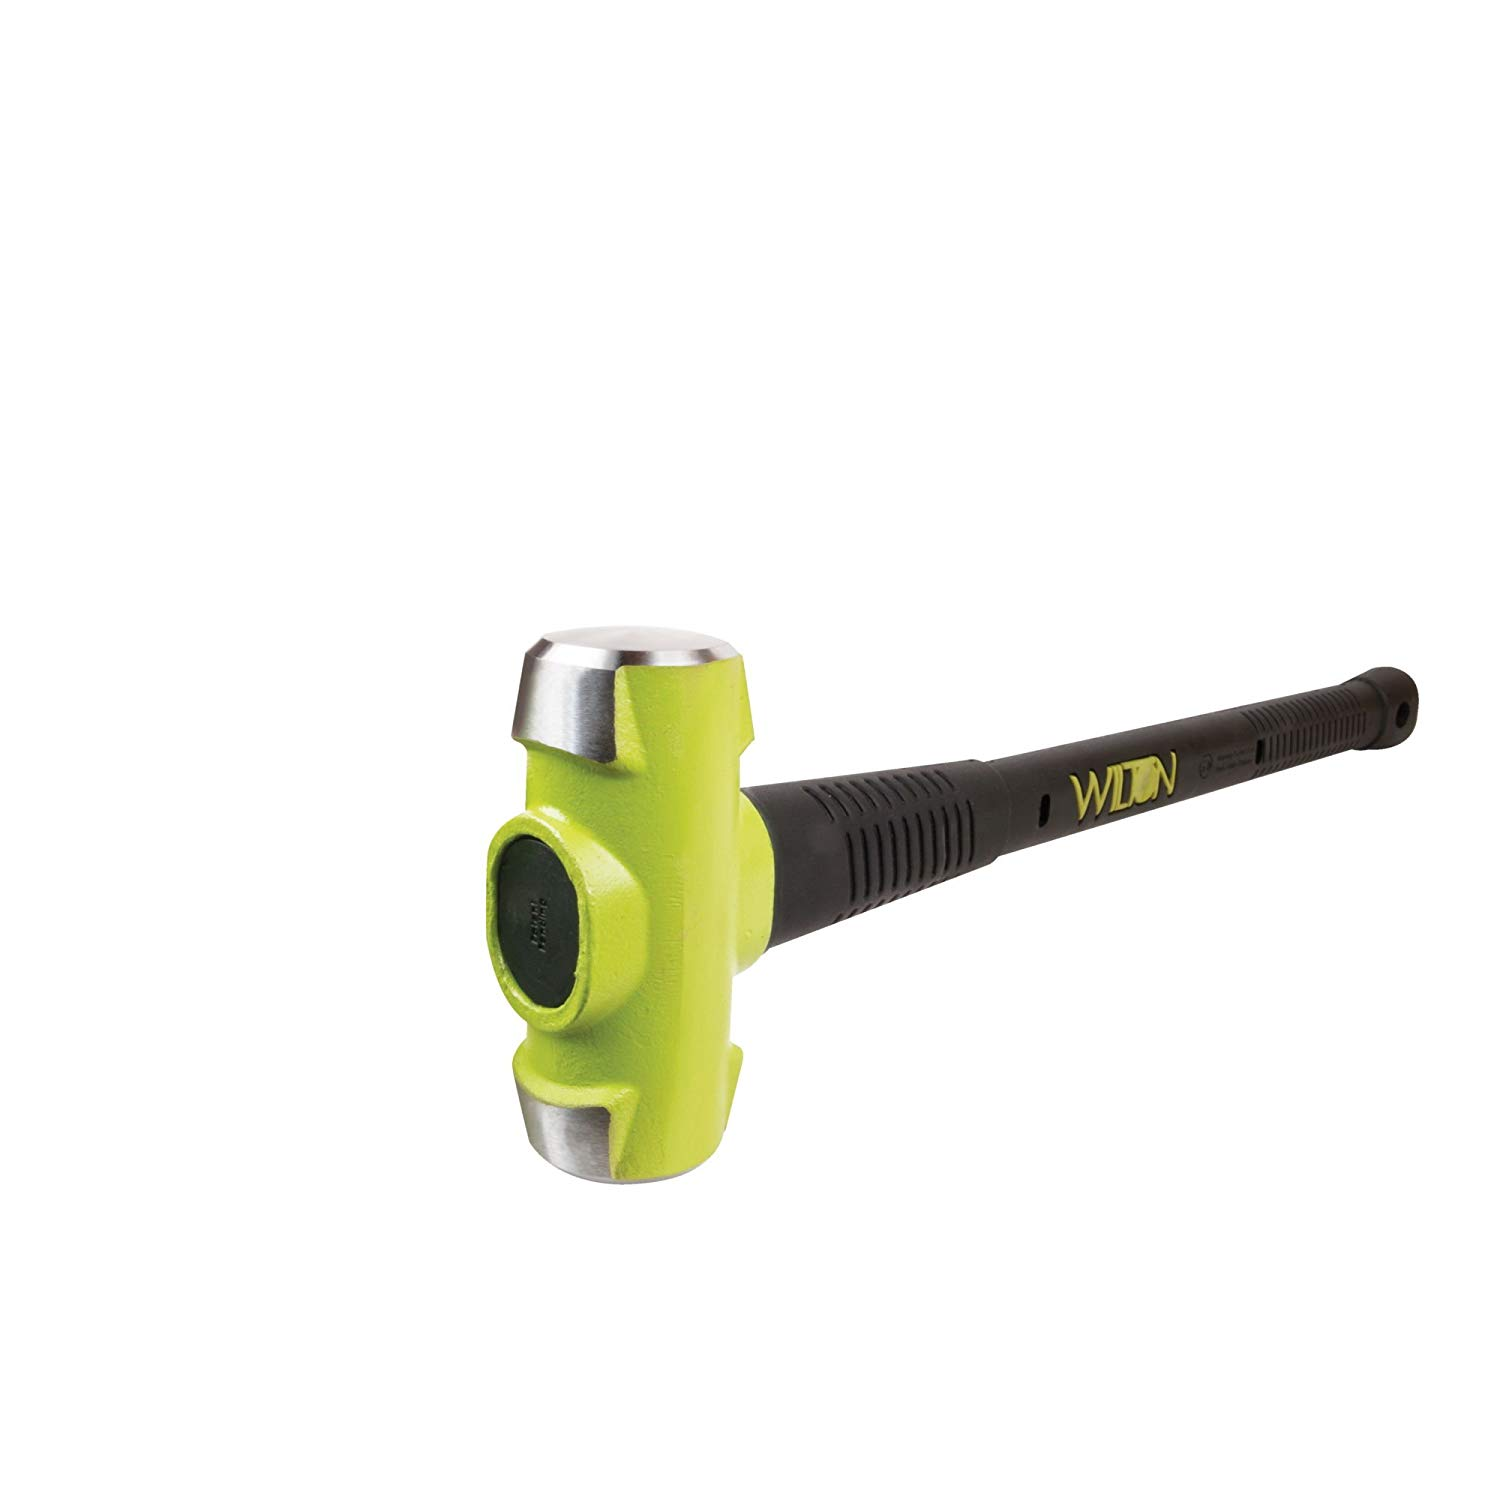 Wilton 22030 20 lb HEAD, 30 B.A.S.H Sledge Hammer with Safety Plate Securing Head to Handle